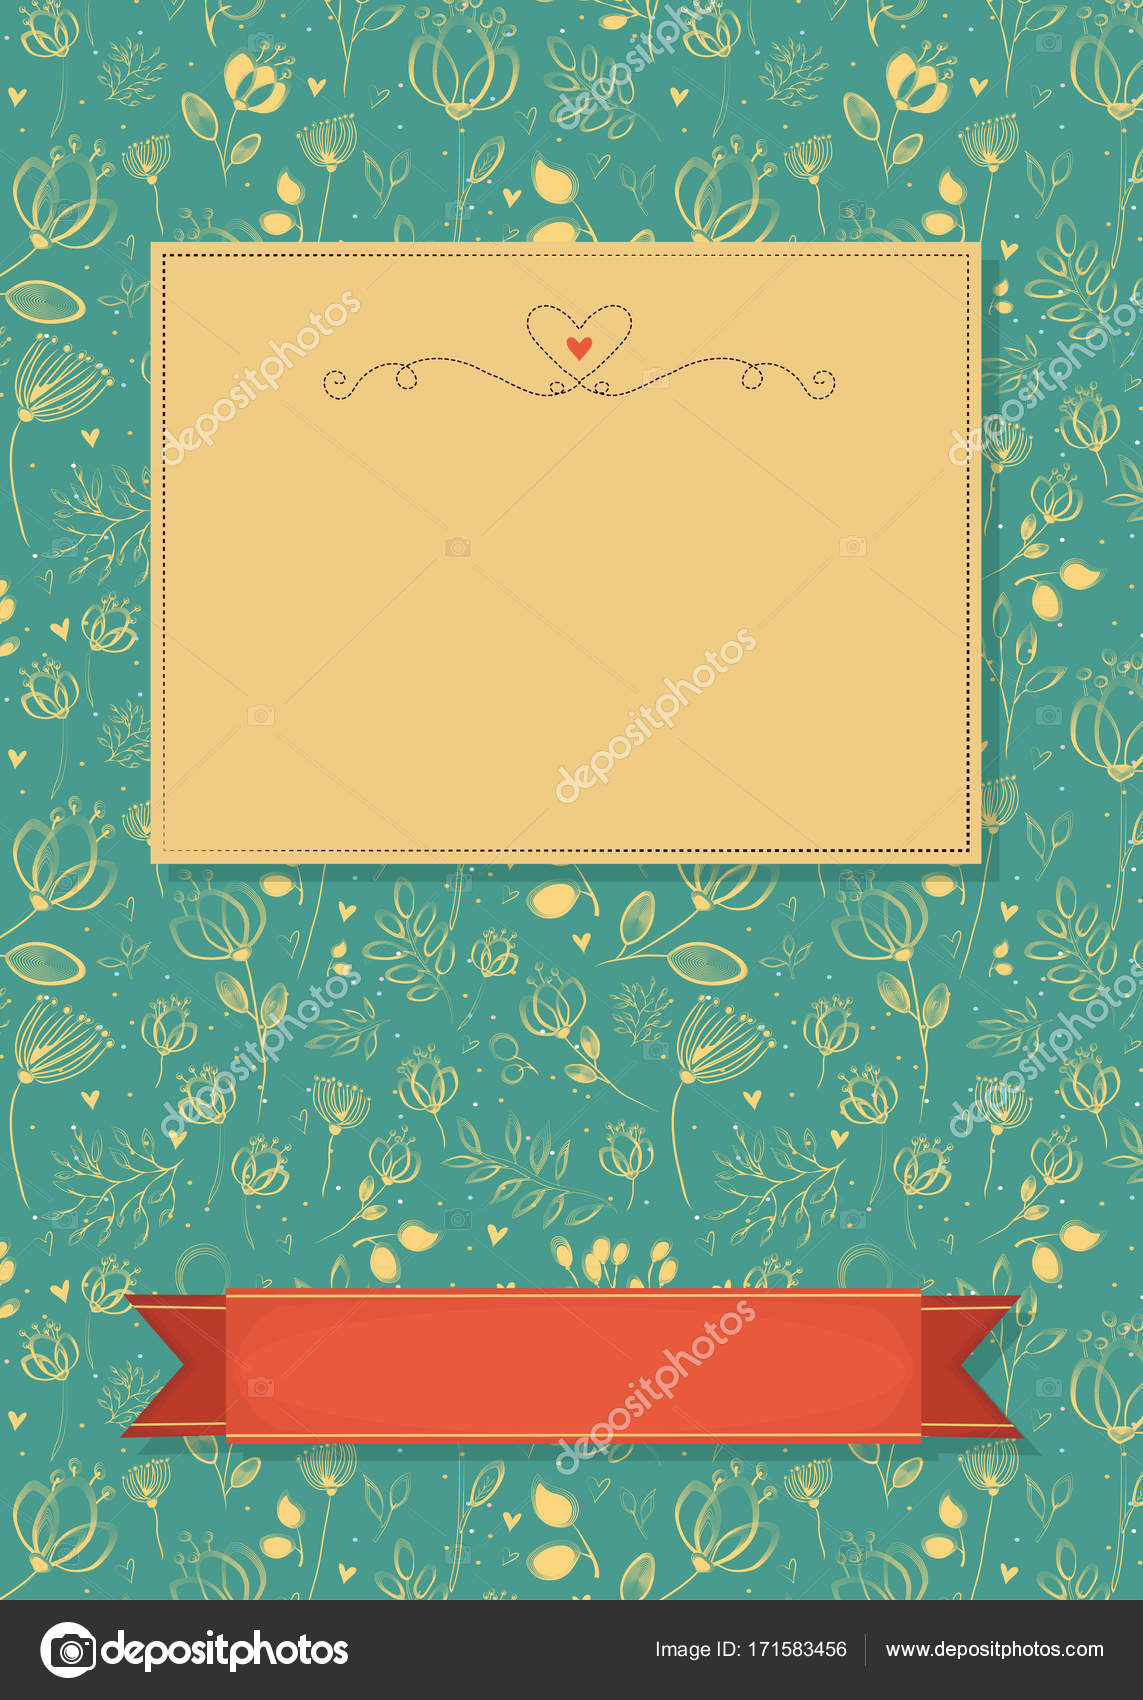 Floral Greeting Card With Banners For Custom Text Stock Photo